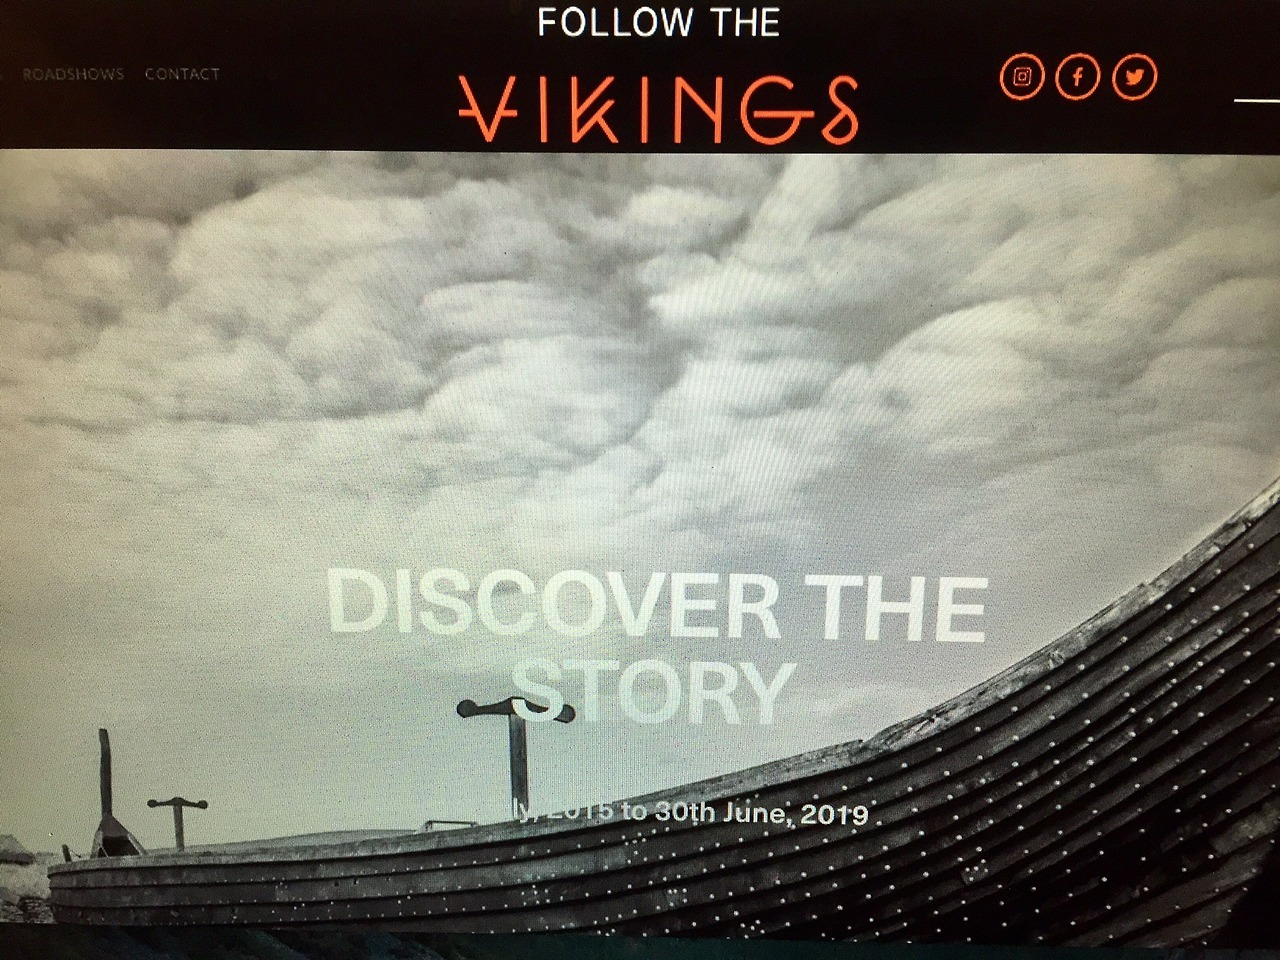 17th October 2017    FOLLOW THE VIKINGS BLOG POST   A blog postabout travelling to Iceland and following in the footsteps of my Viking heroine is now online! Click  hereto read about the search for Aud the Deep-Minded.    Follow the Vikings  is a Shetland project which makes all sorts of interesting international connections. Thank you to Helen Smith of  Shetland Amenity Trust  for inviting me to write this piece.